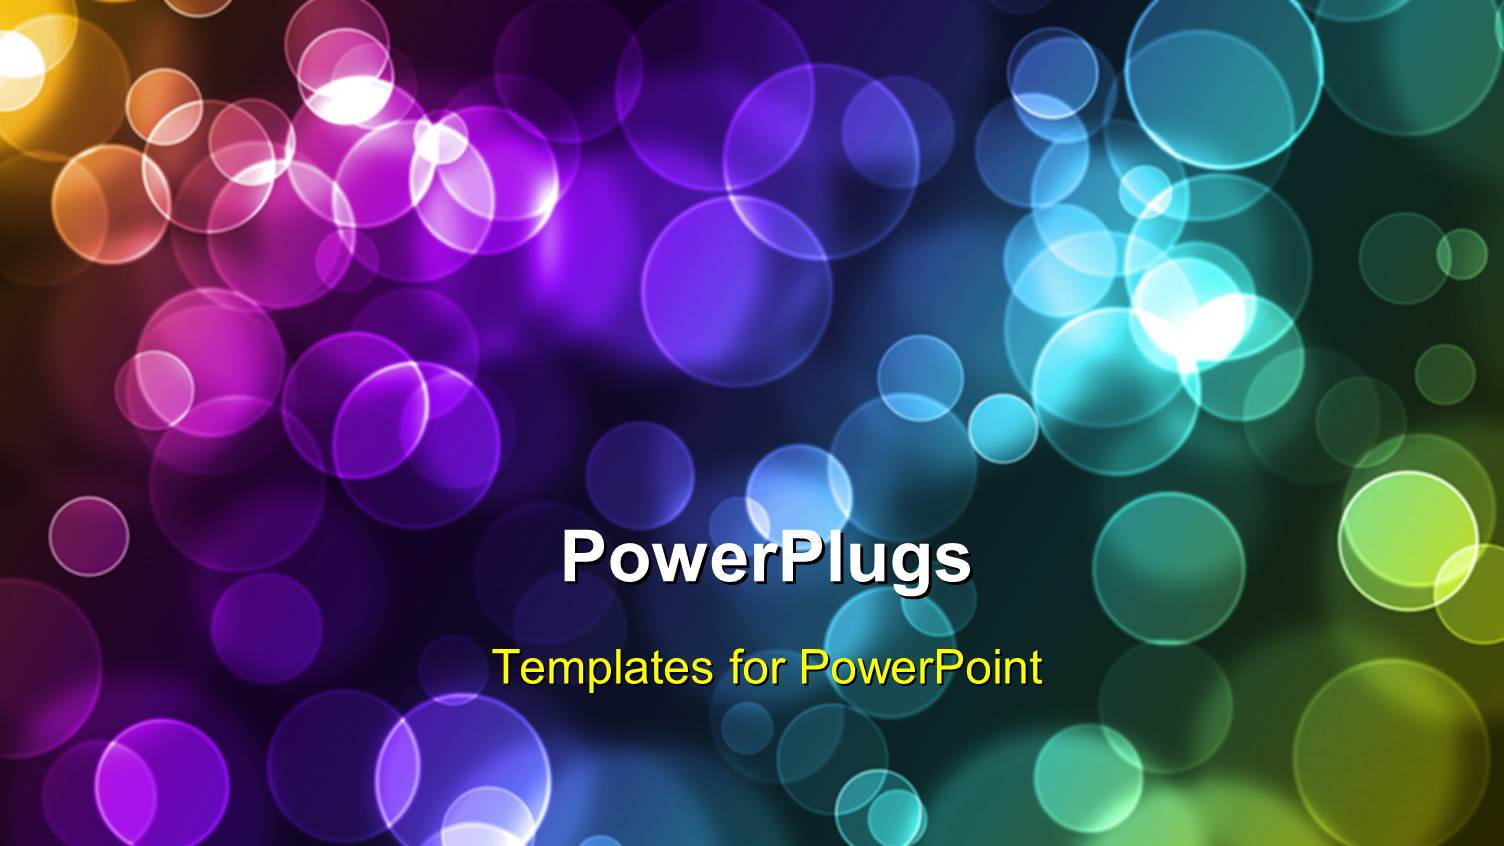 5000 art portfolio powerpoint templates w art portfolio themed ppt theme with abstract glowing colorful circles on a dark background toneelgroepblik Images